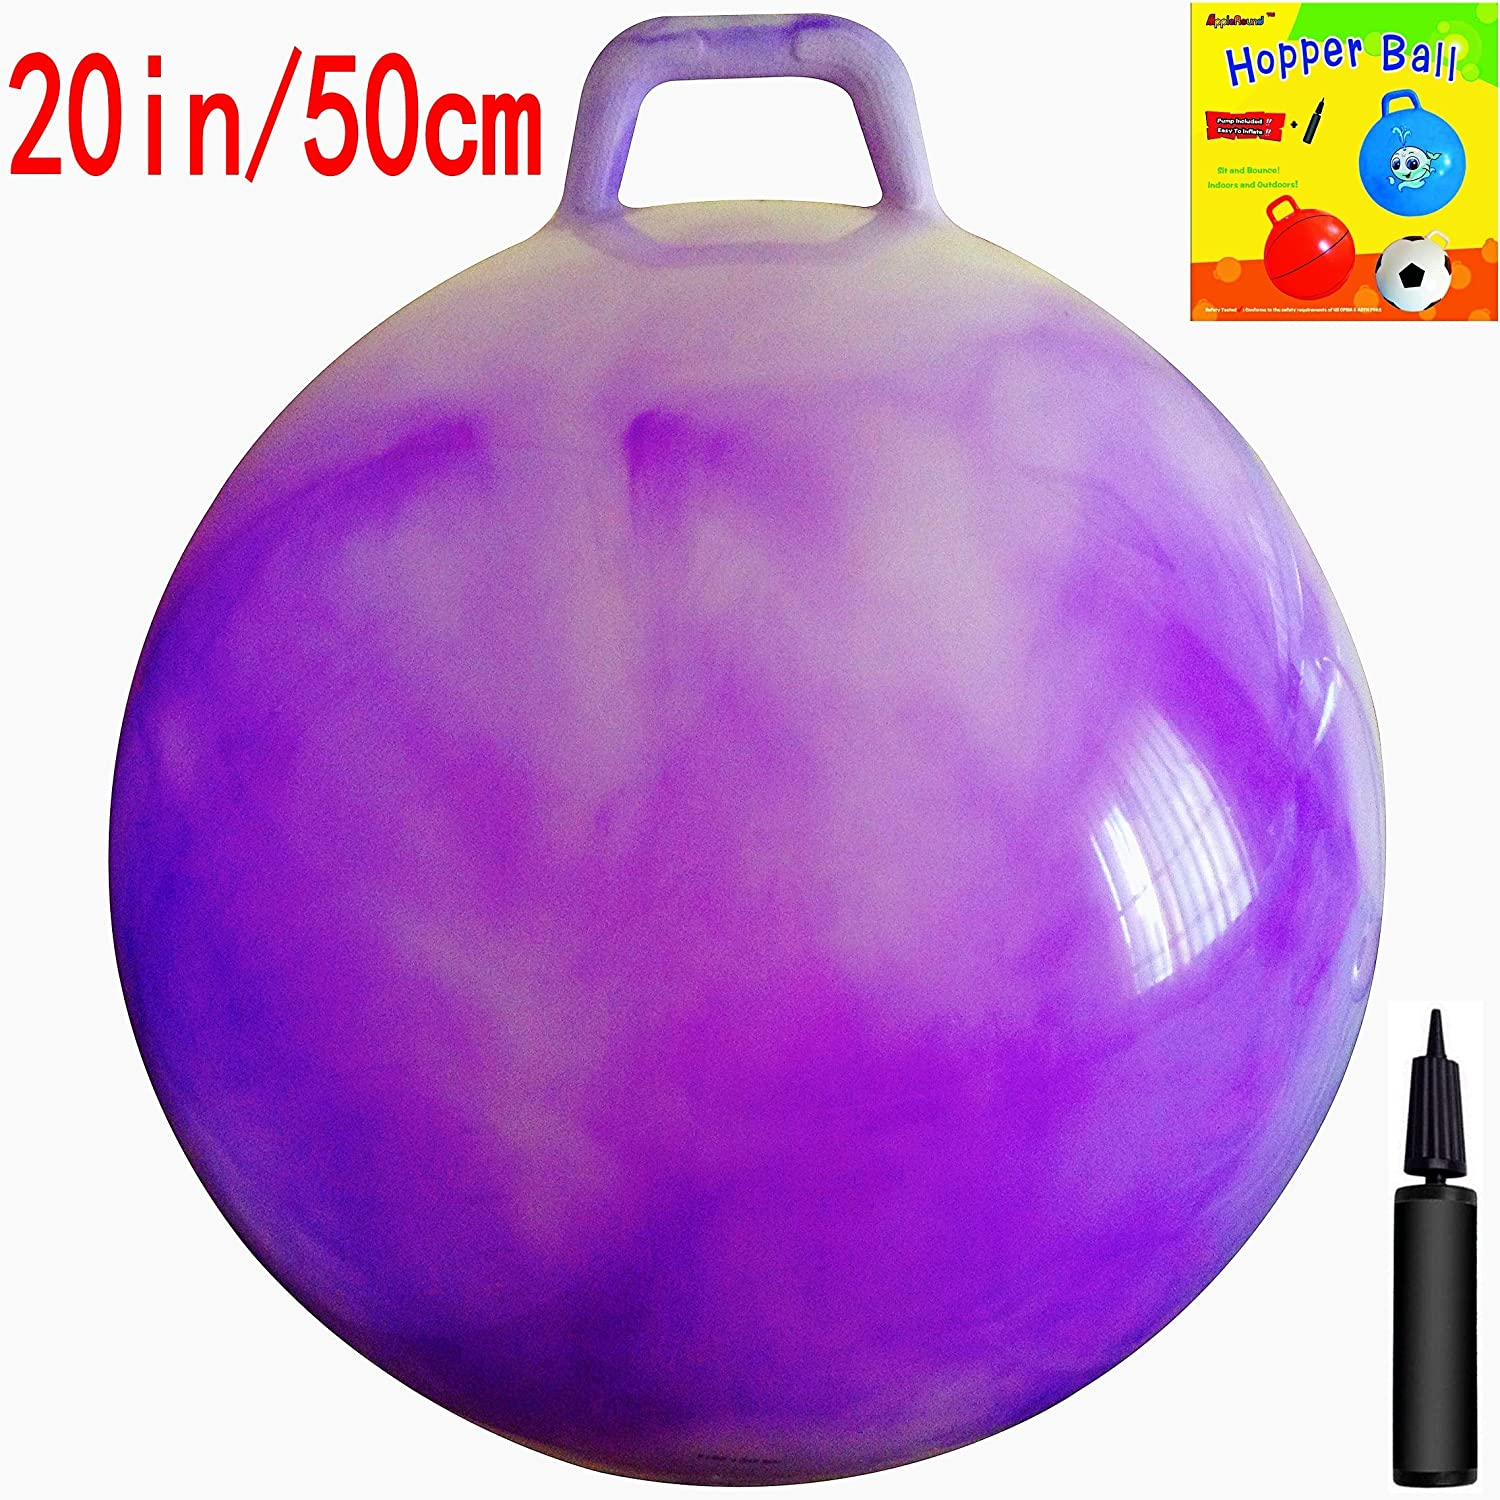 AppleRound Space Hopper Ball with Air Pump 20in 50cm Diameter for Ages 7 9 Hop Ball Kangaroo Bouncer Hoppity Hop Jumping Ball Sit Bounce